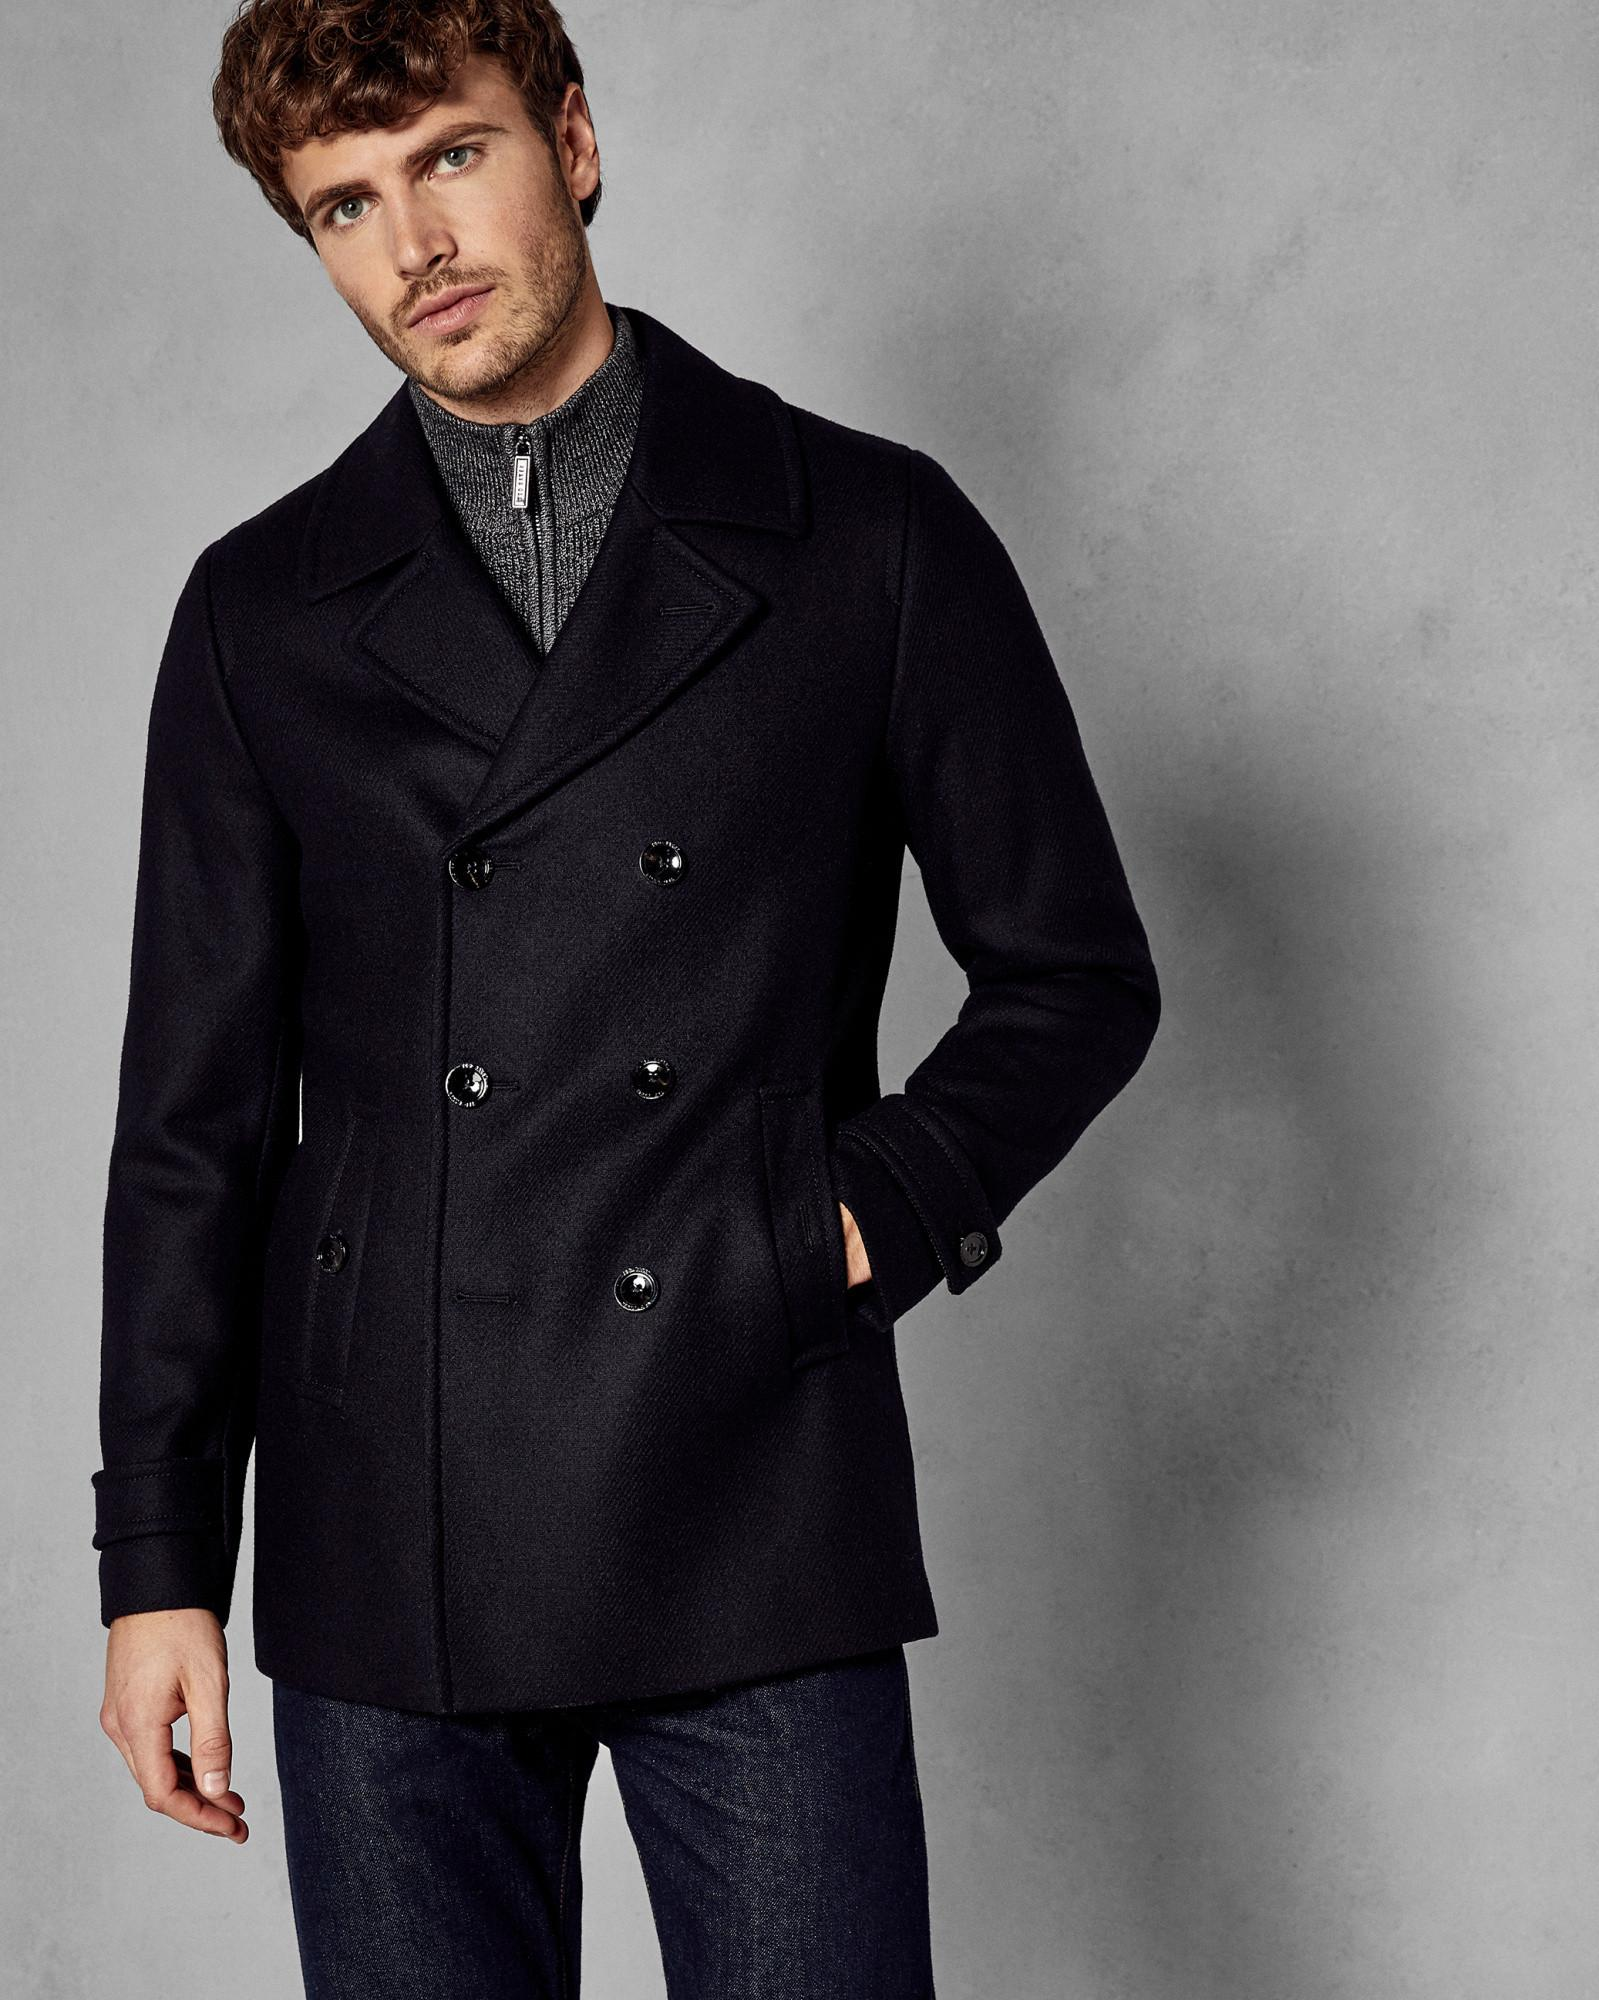 fead70d81 Ted Baker Double Breasted Wool Pea Coat in Blue for Men - Lyst